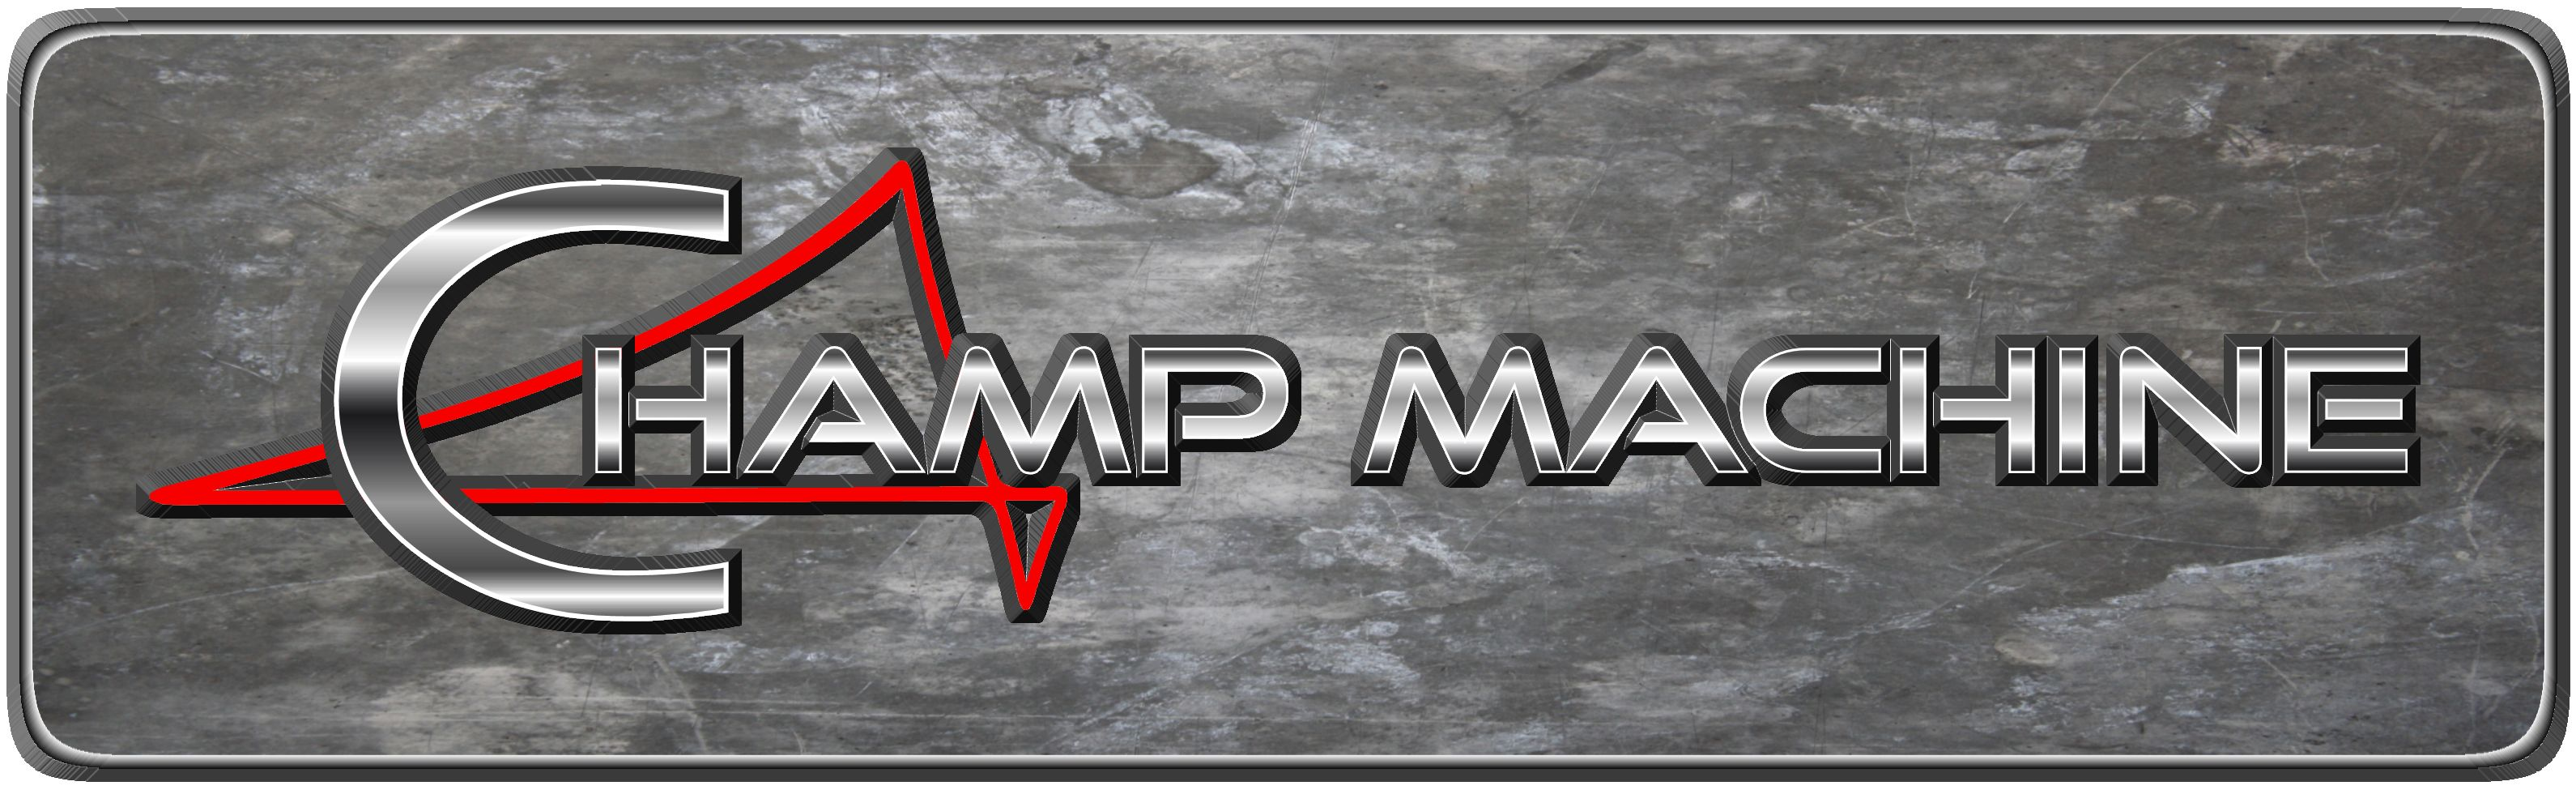 Champ Machine and Welding Ltd